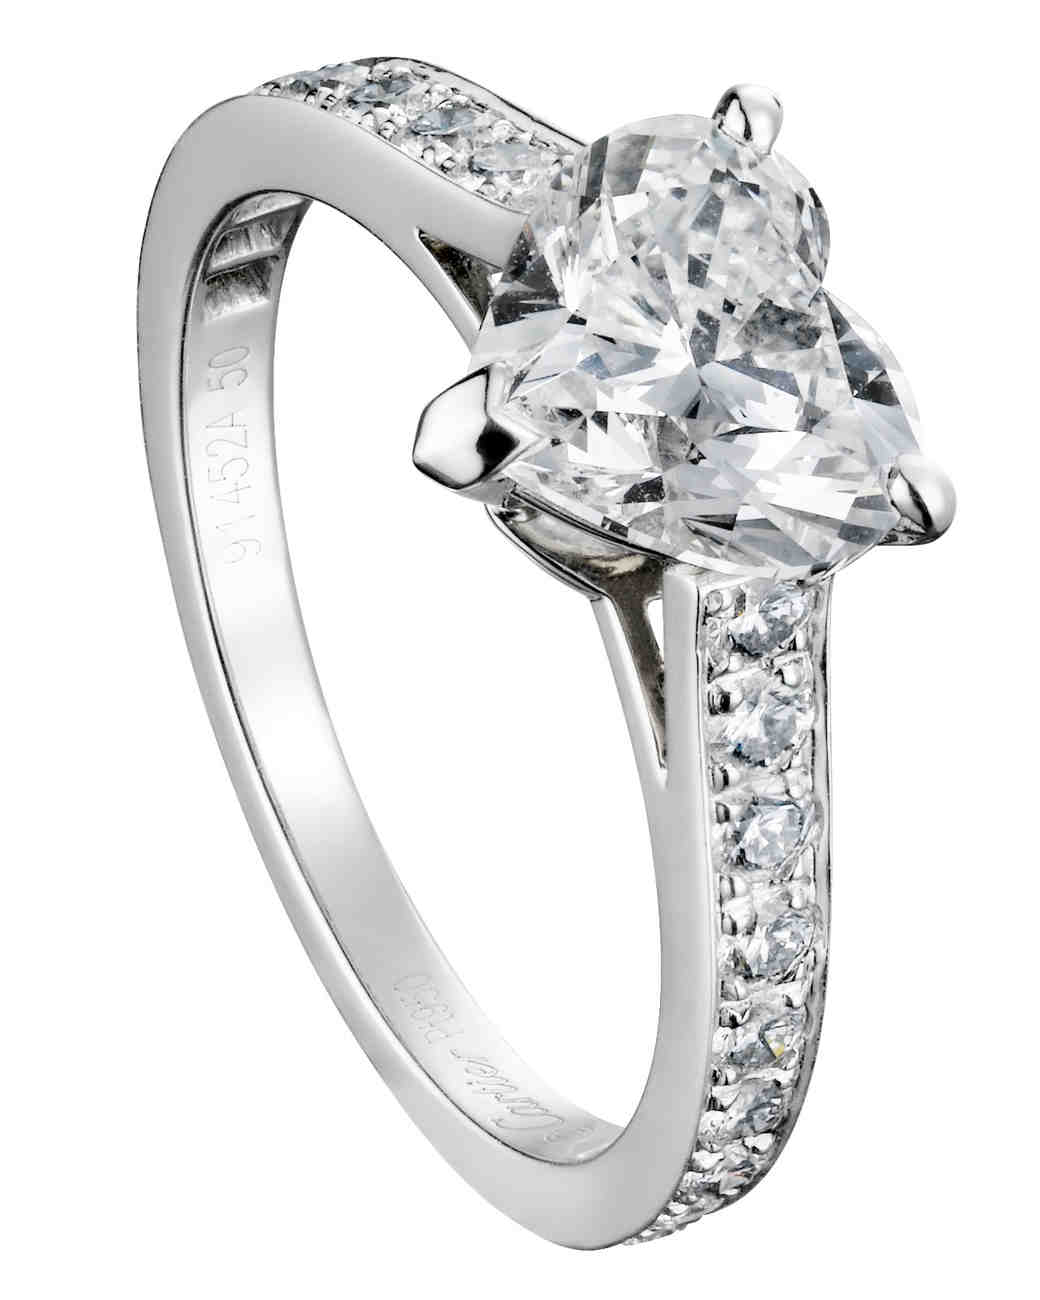 heart shaped engagement rings - Heart Shaped Wedding Rings